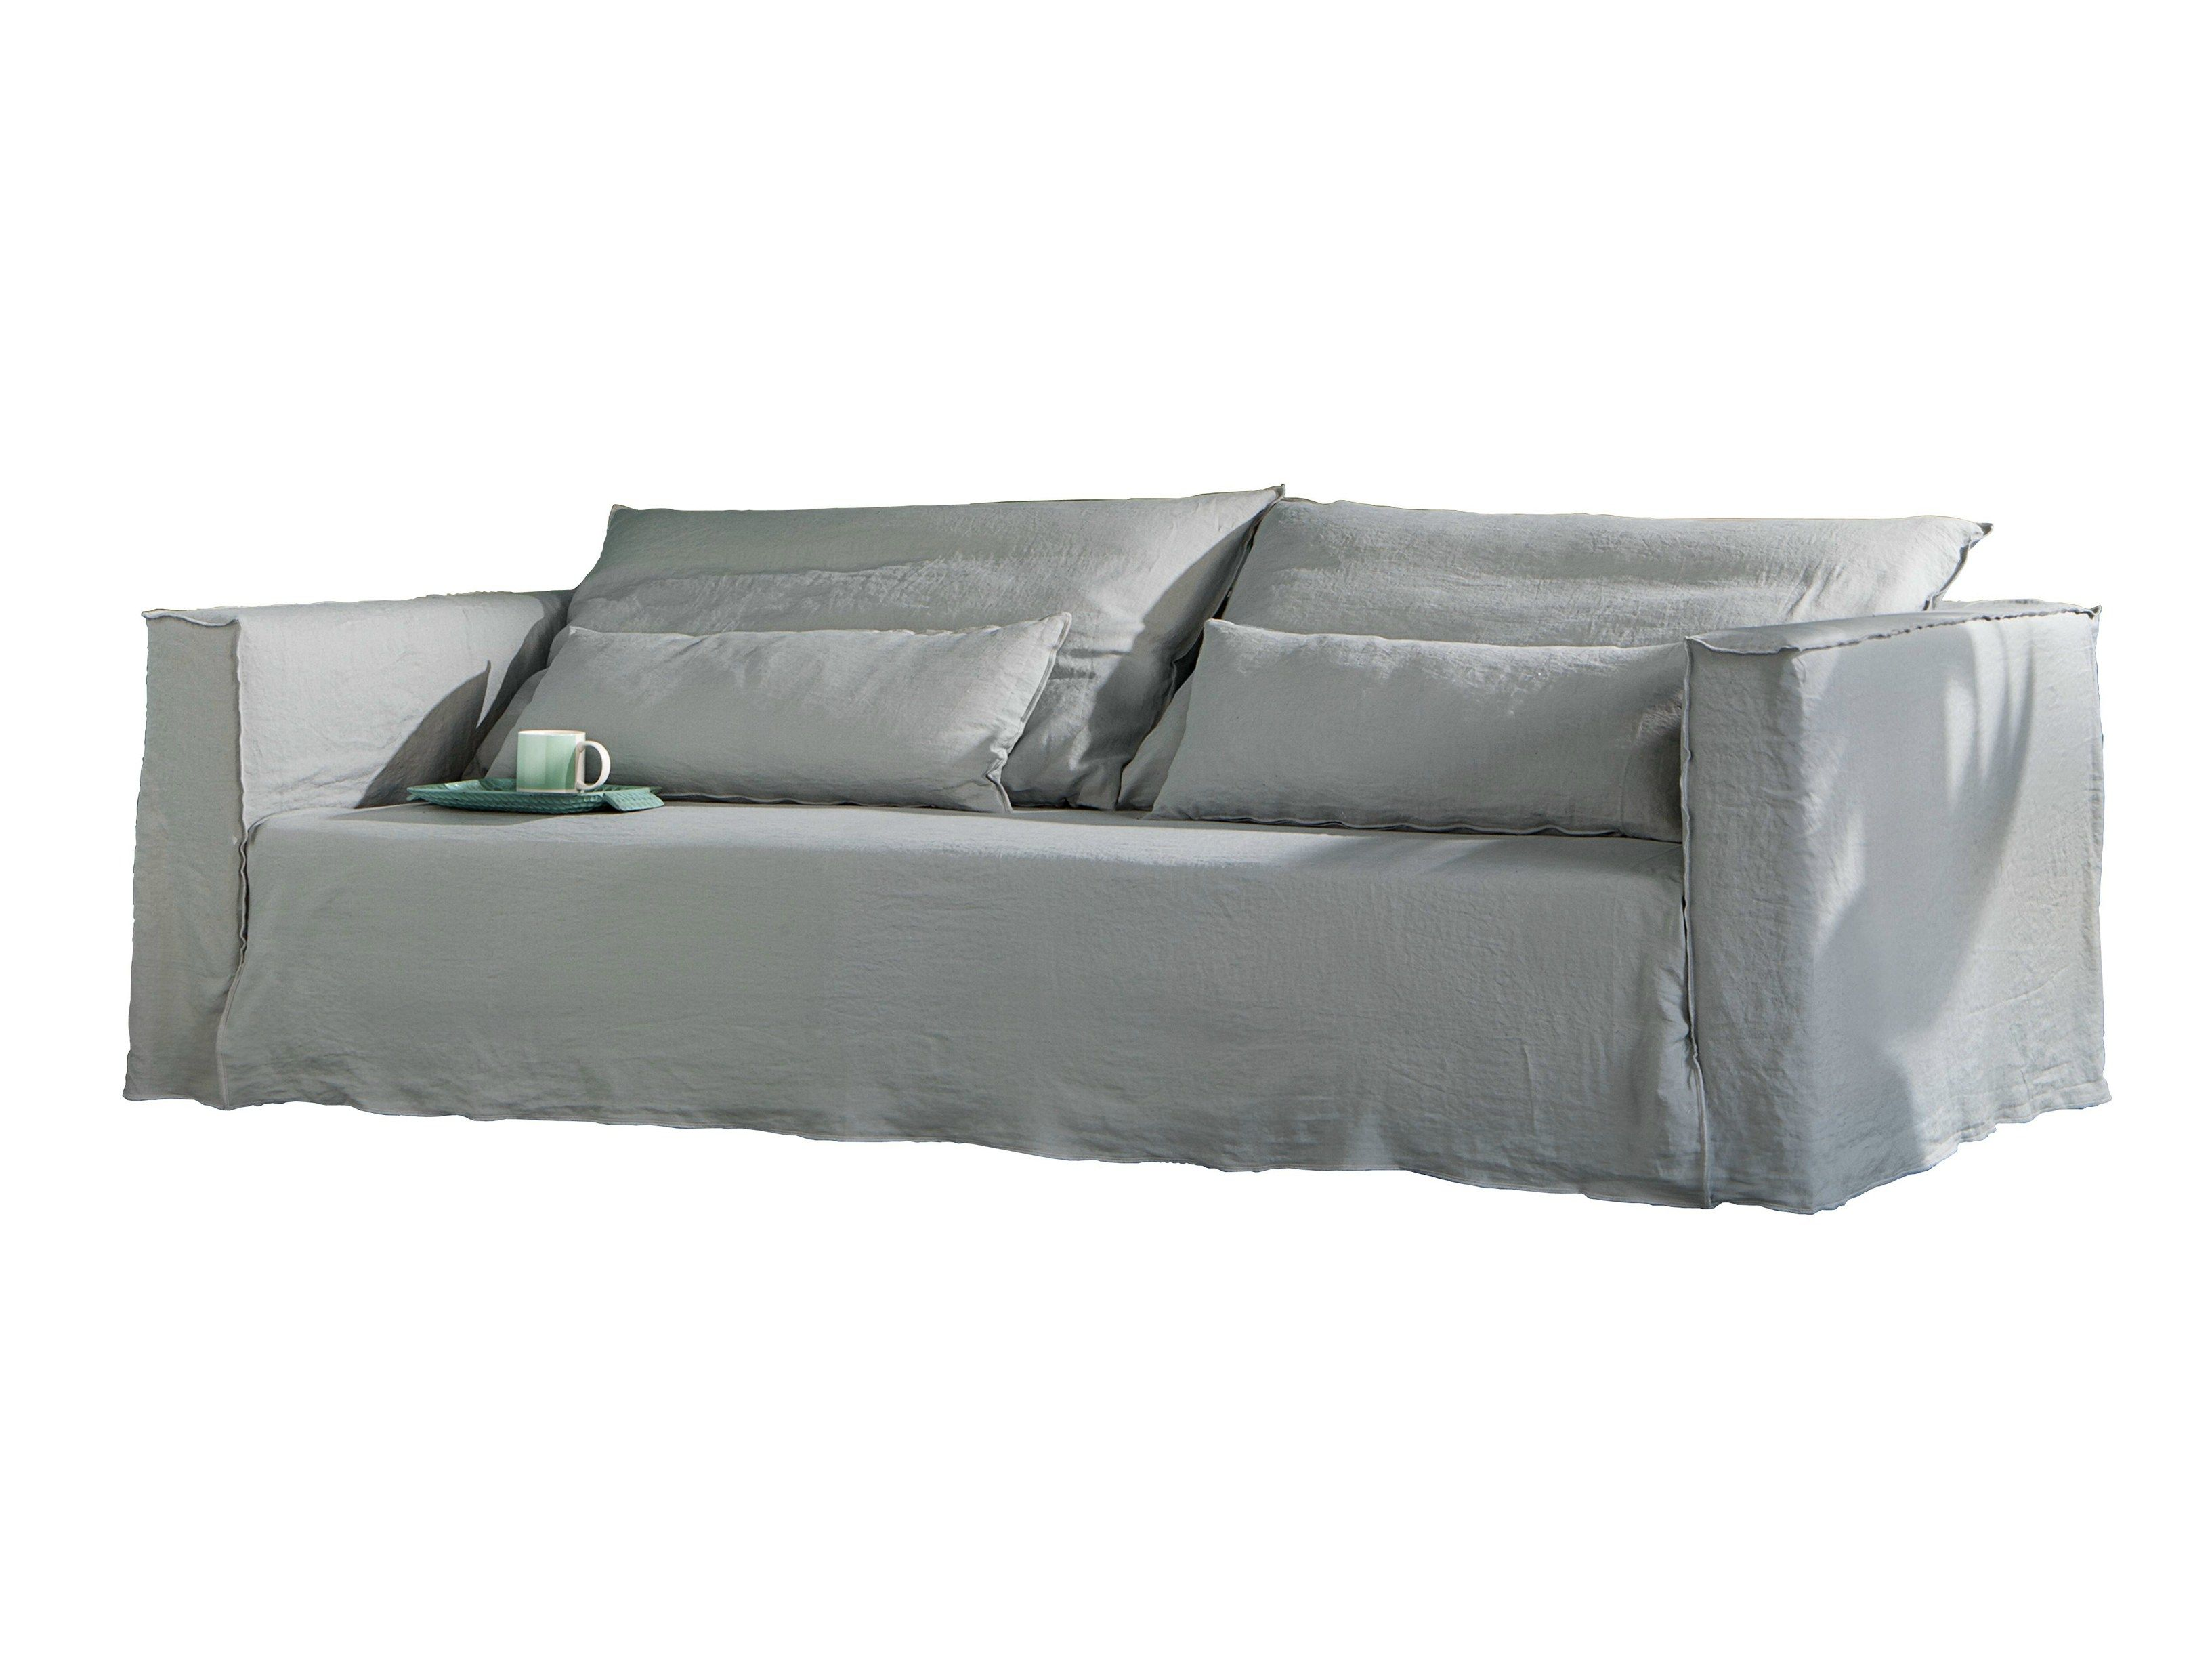 3 Seater Sofa With Removable Cover Brick 12 By Gervasoni Design Paola Navone Ikea Sofa Covers Furniture Slipcovers 3 Seater Sofa